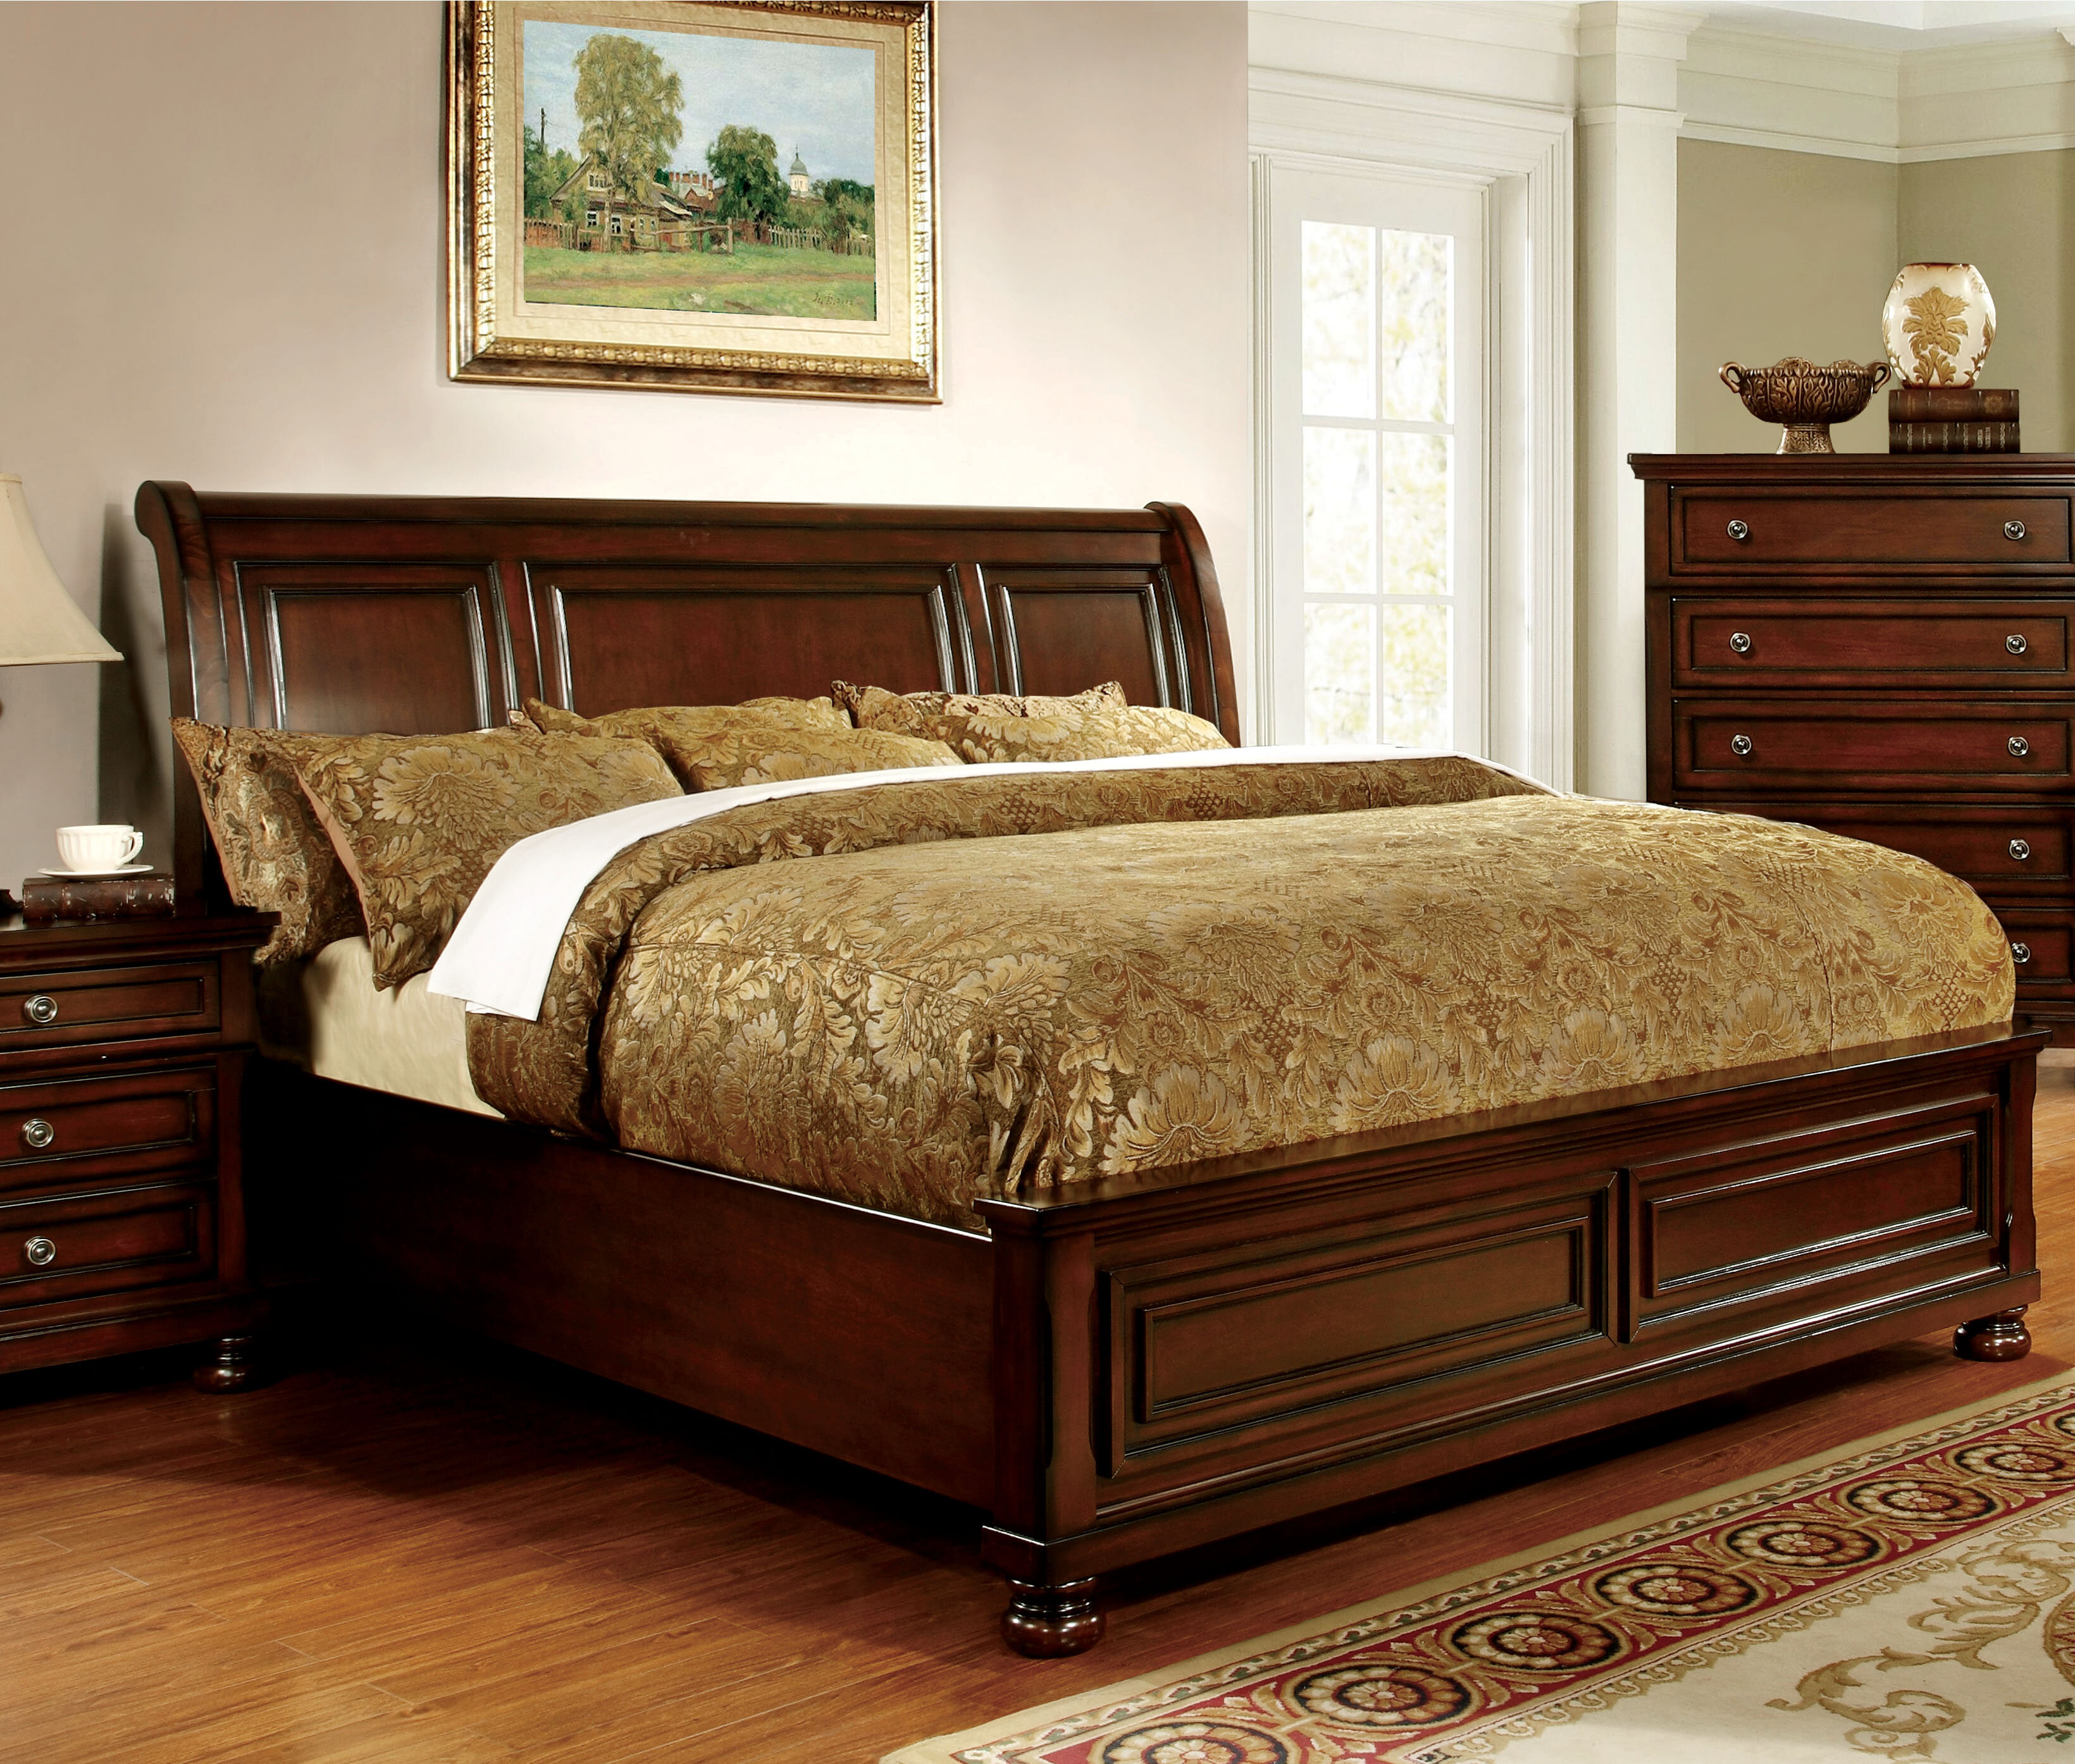 darby home co barossa sleigh bed & reviews | wayfair